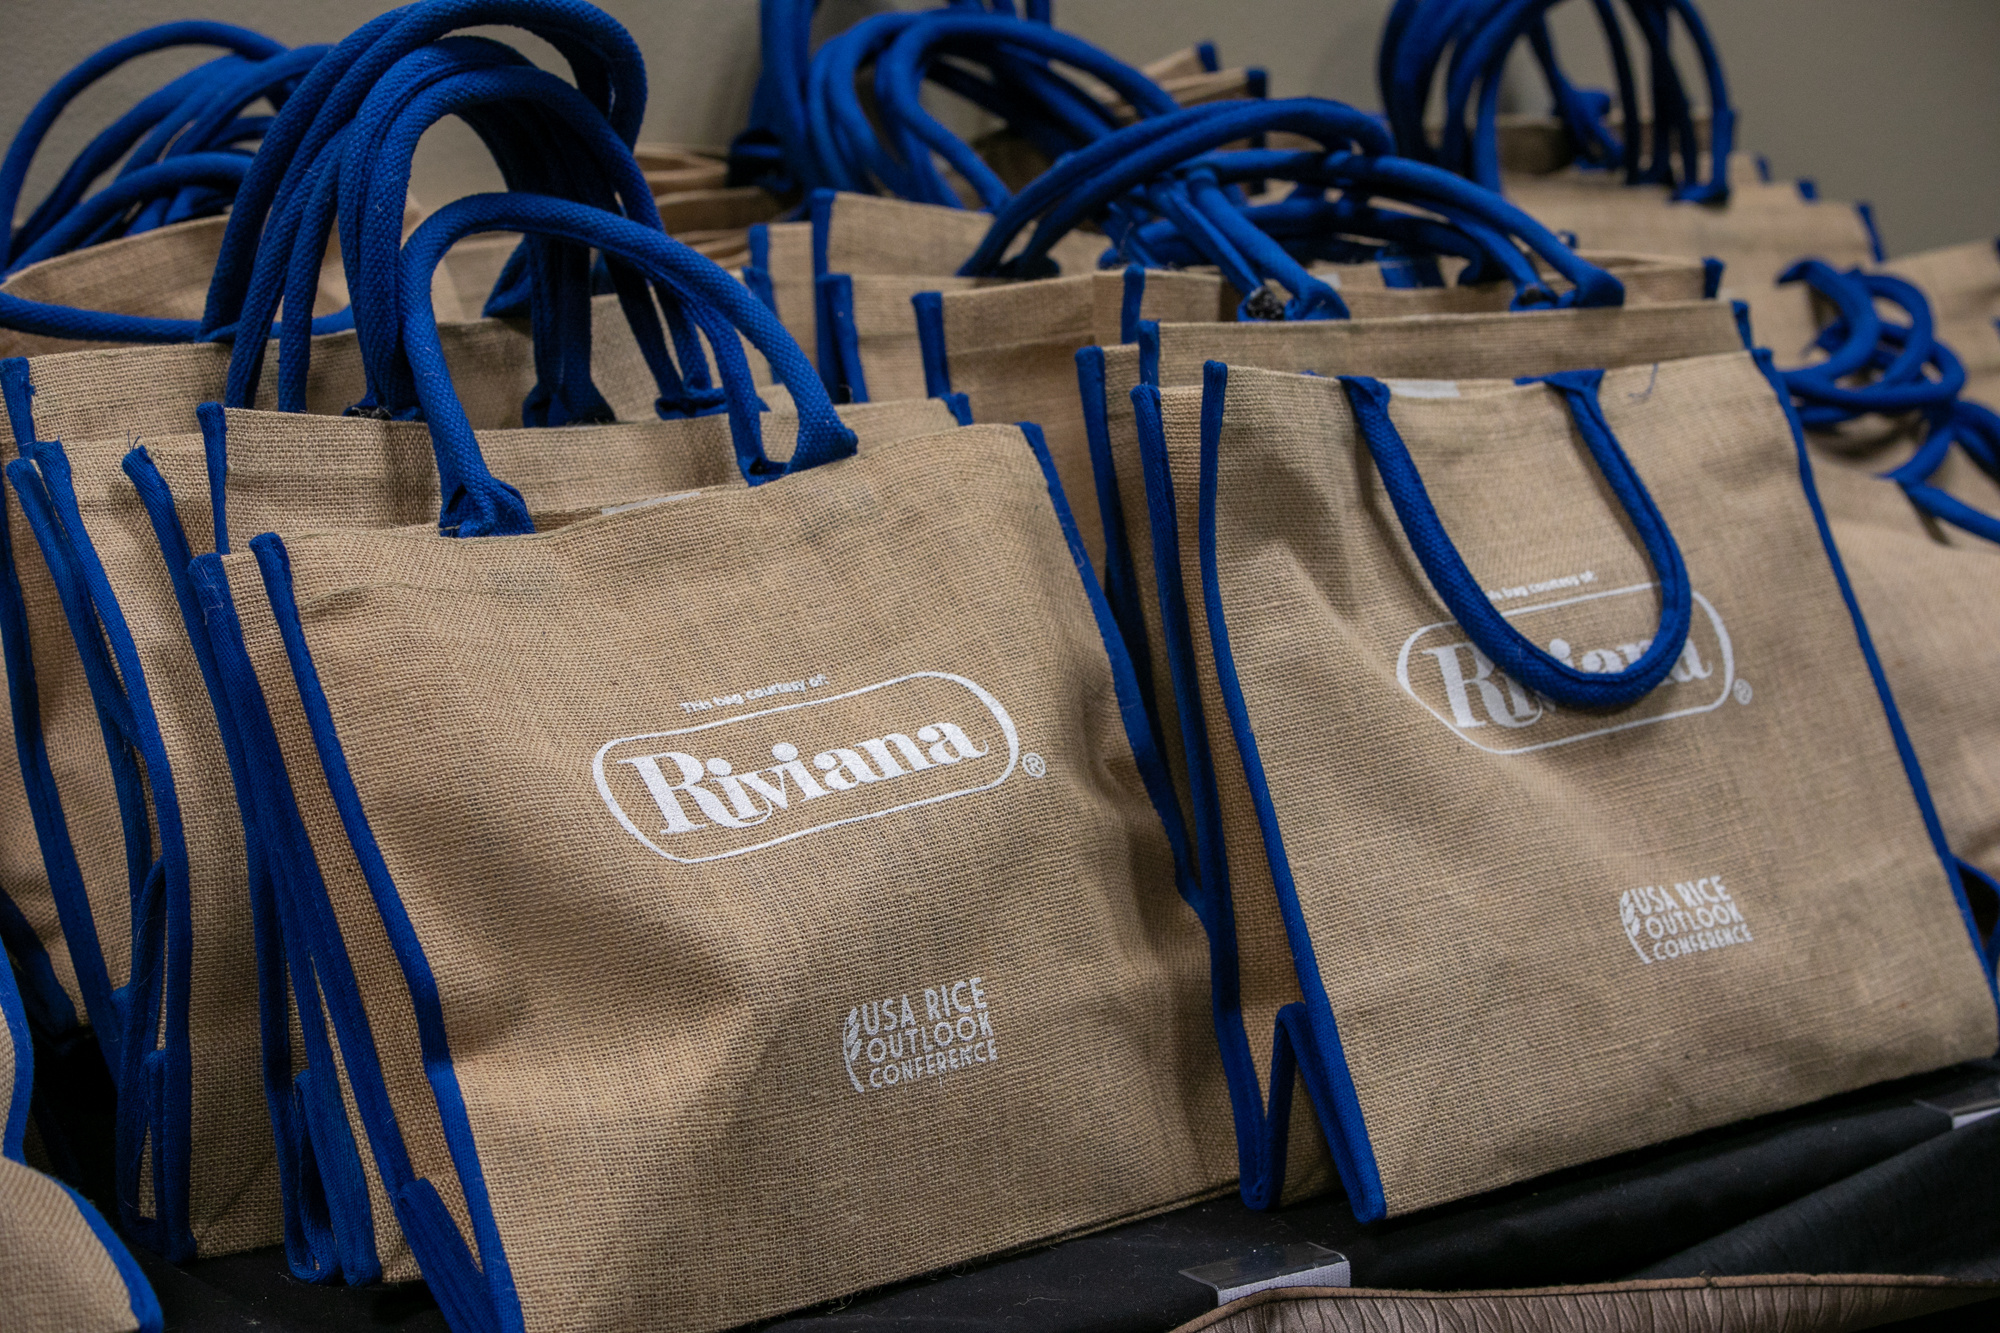 Goodie bags from show sponsors